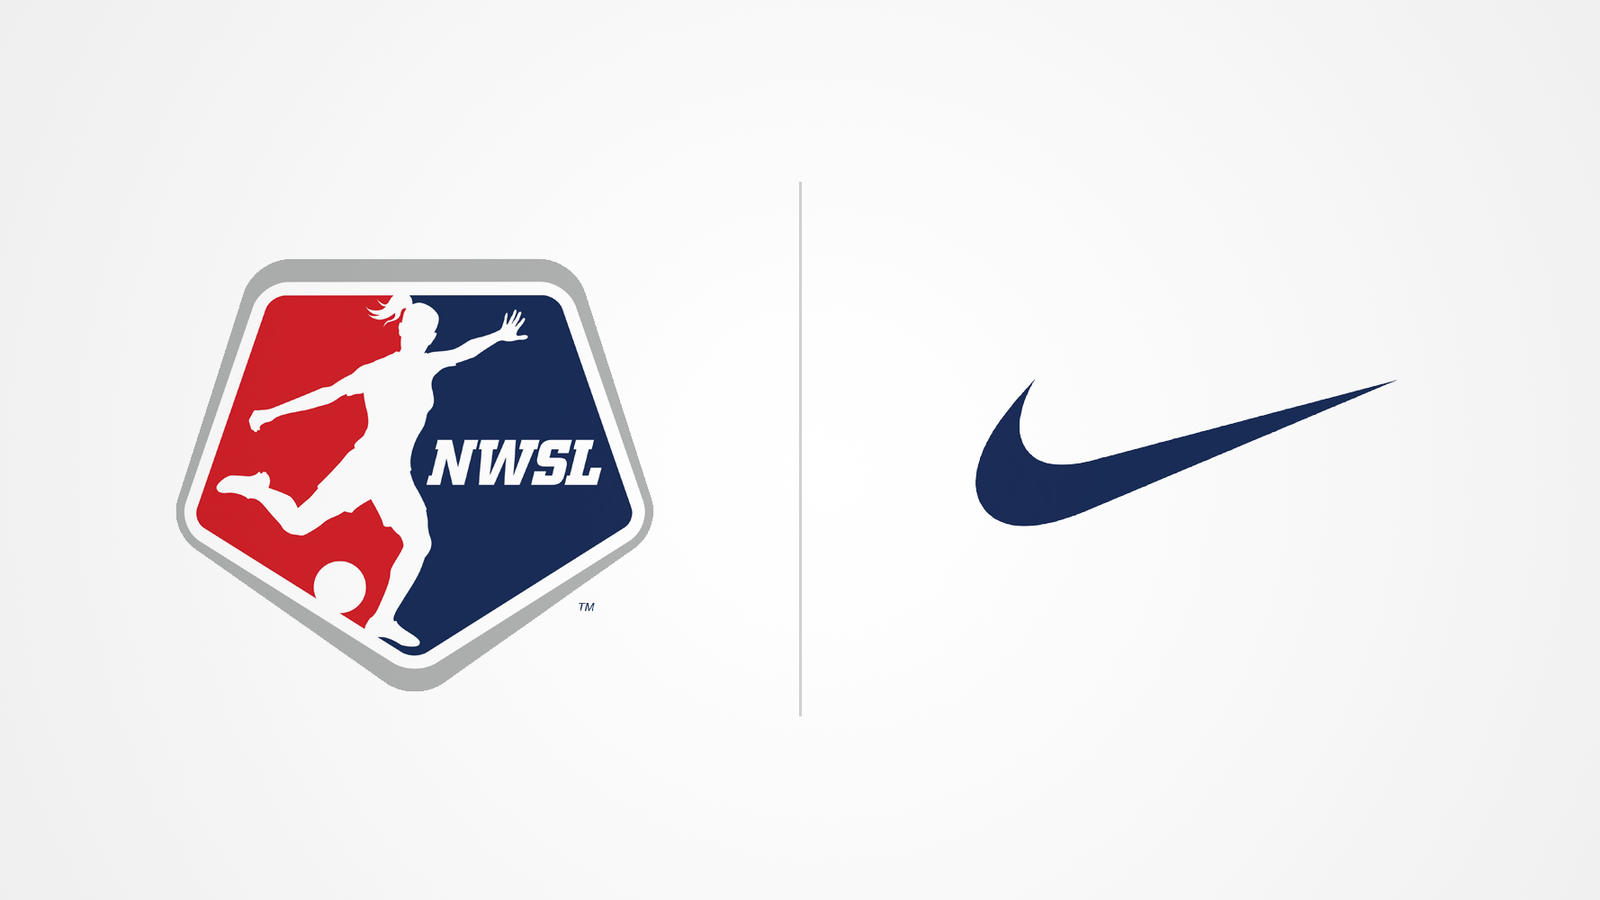 Nike x NWSL Extended Partnership 1